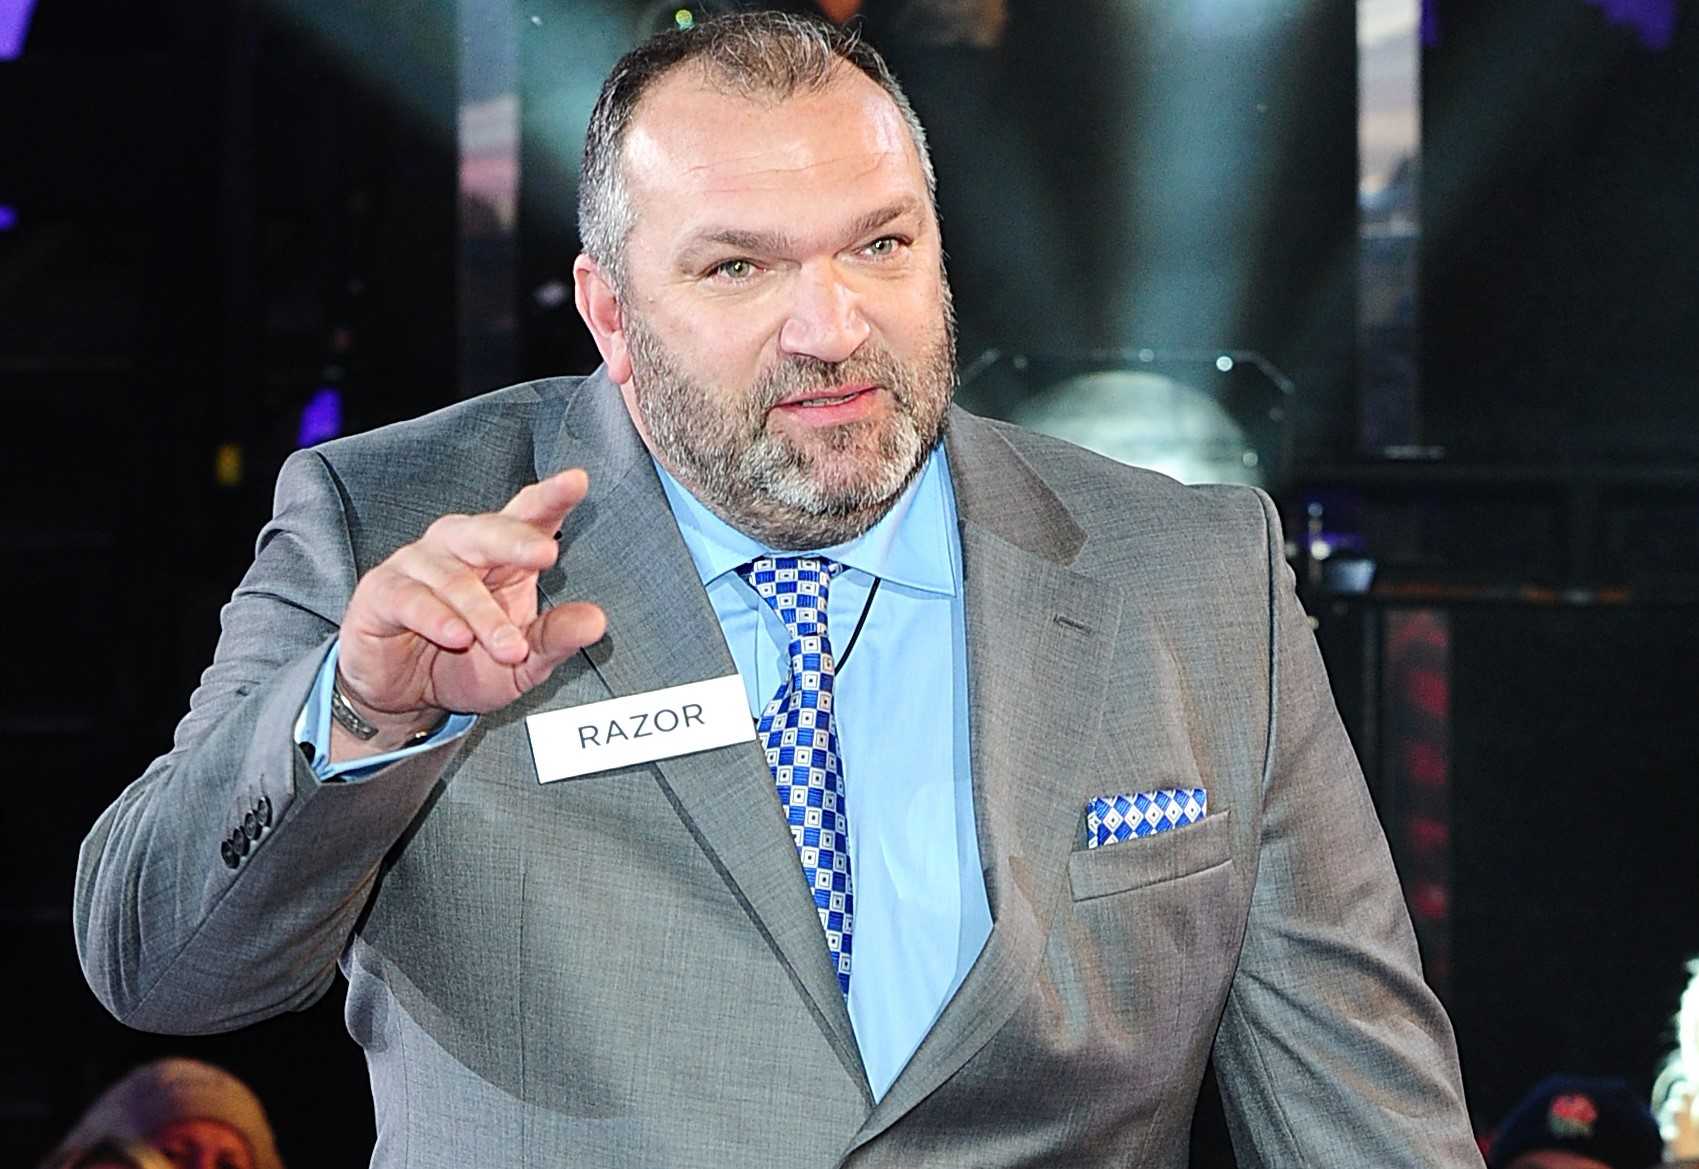 Neil Razor Ruddock claims he is the reason Robbie Williams left Take That. (PA)